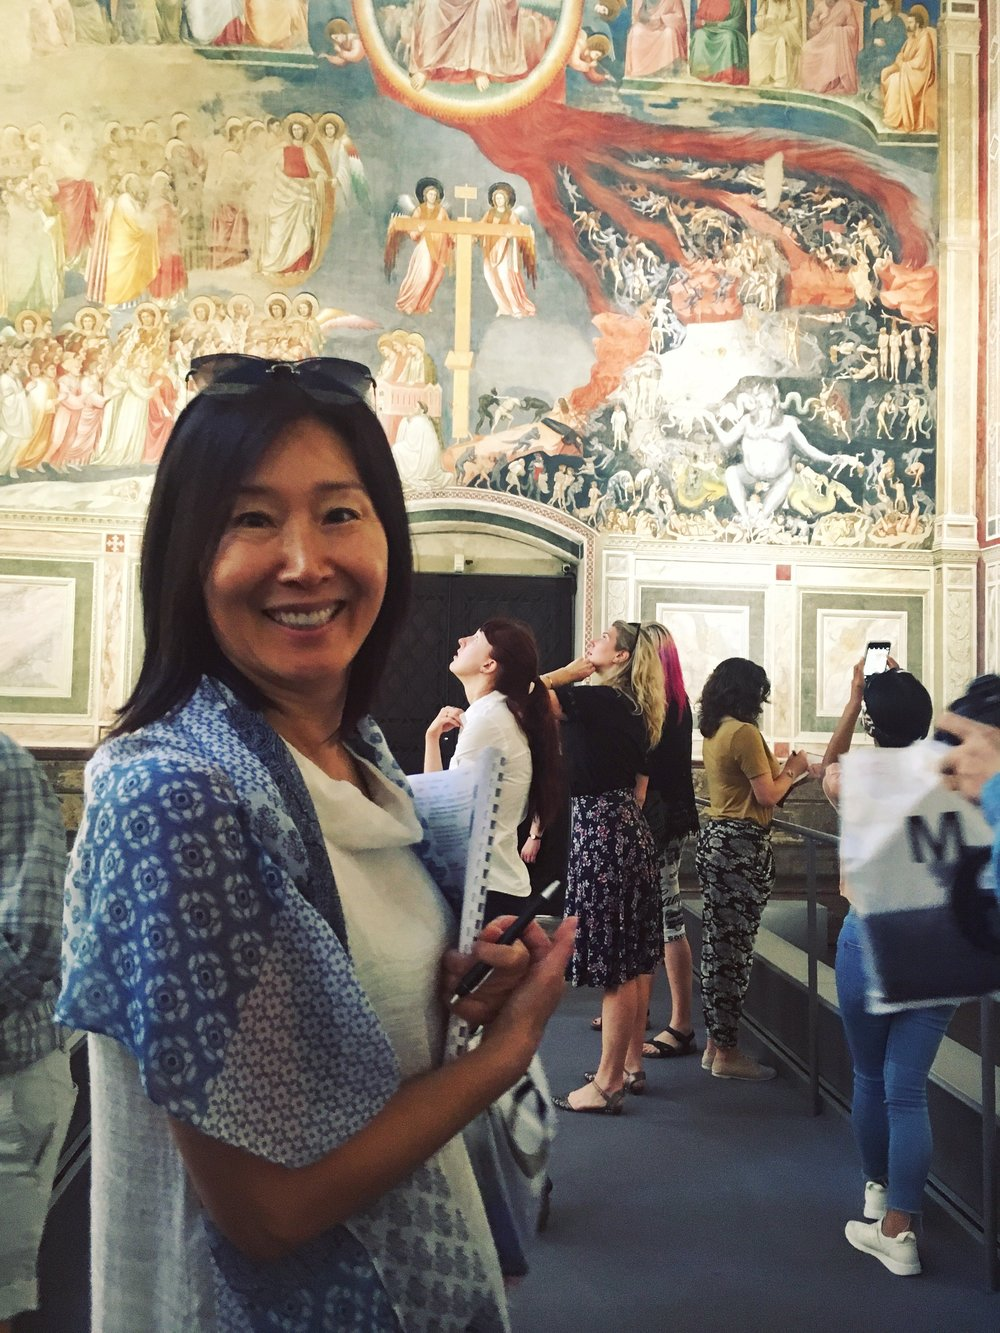 June Kim, undergraduate student of Painting, with Giotto's frescoes in the Scrovegni Chapel in Padua